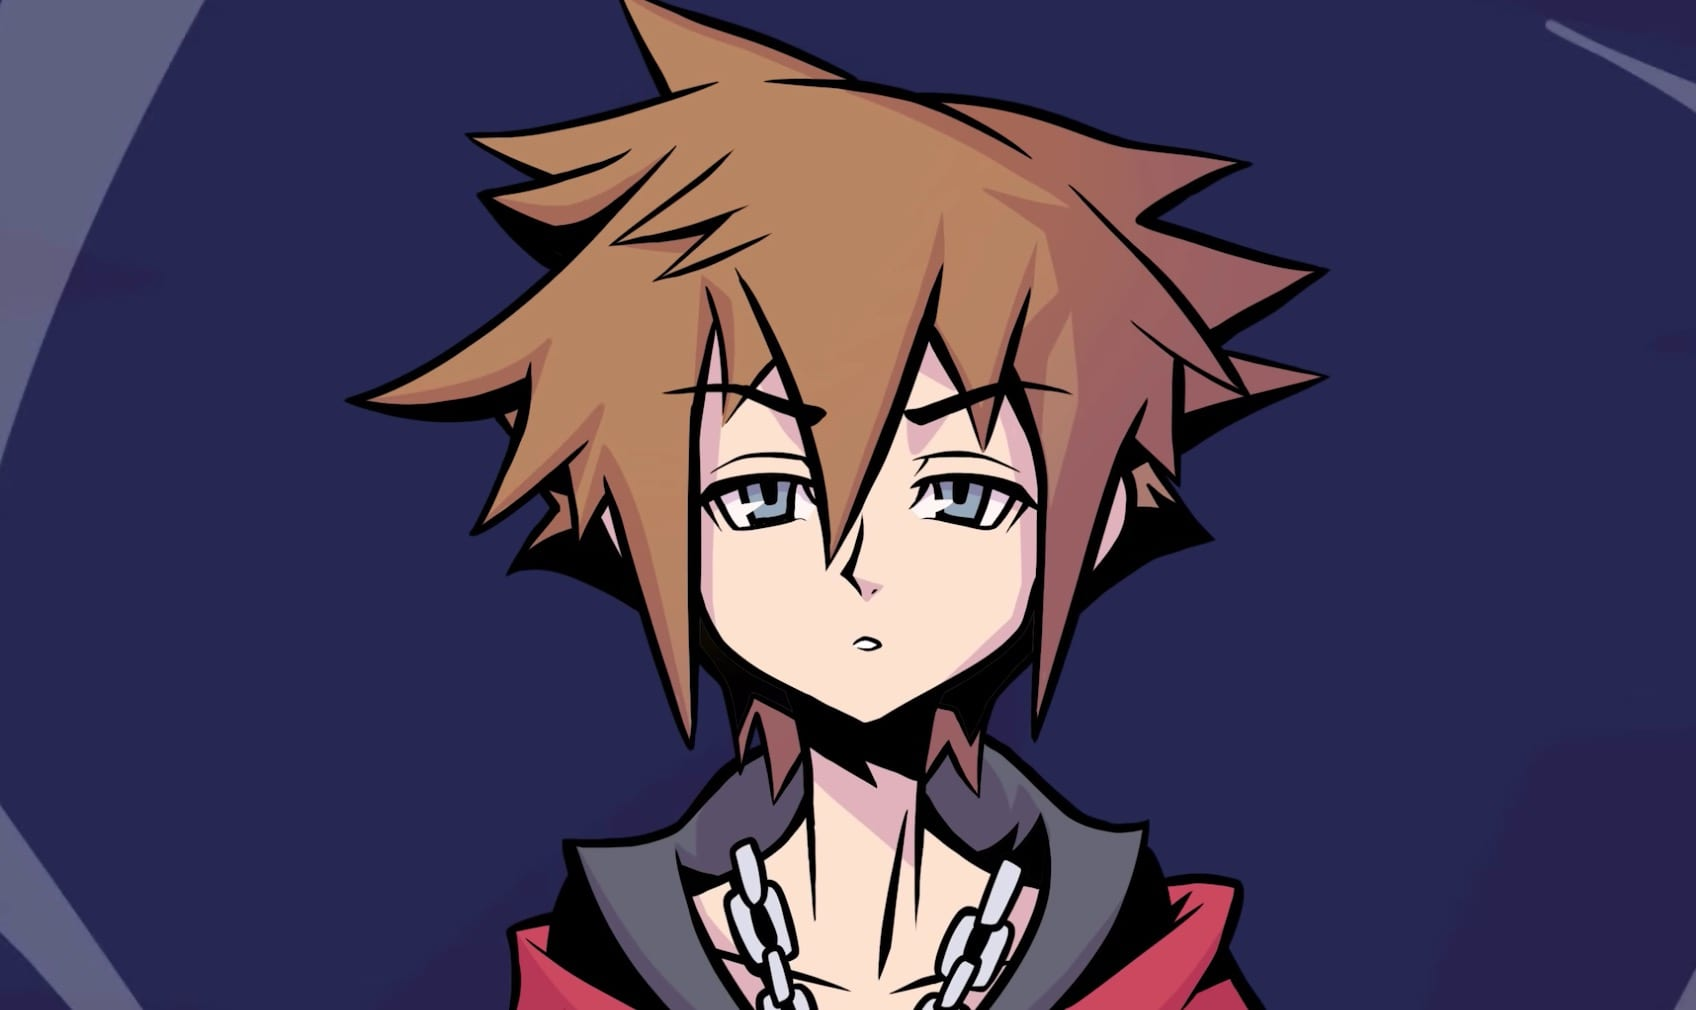 kingdom hearts 3 remind dlc, the world ends with you artstyle